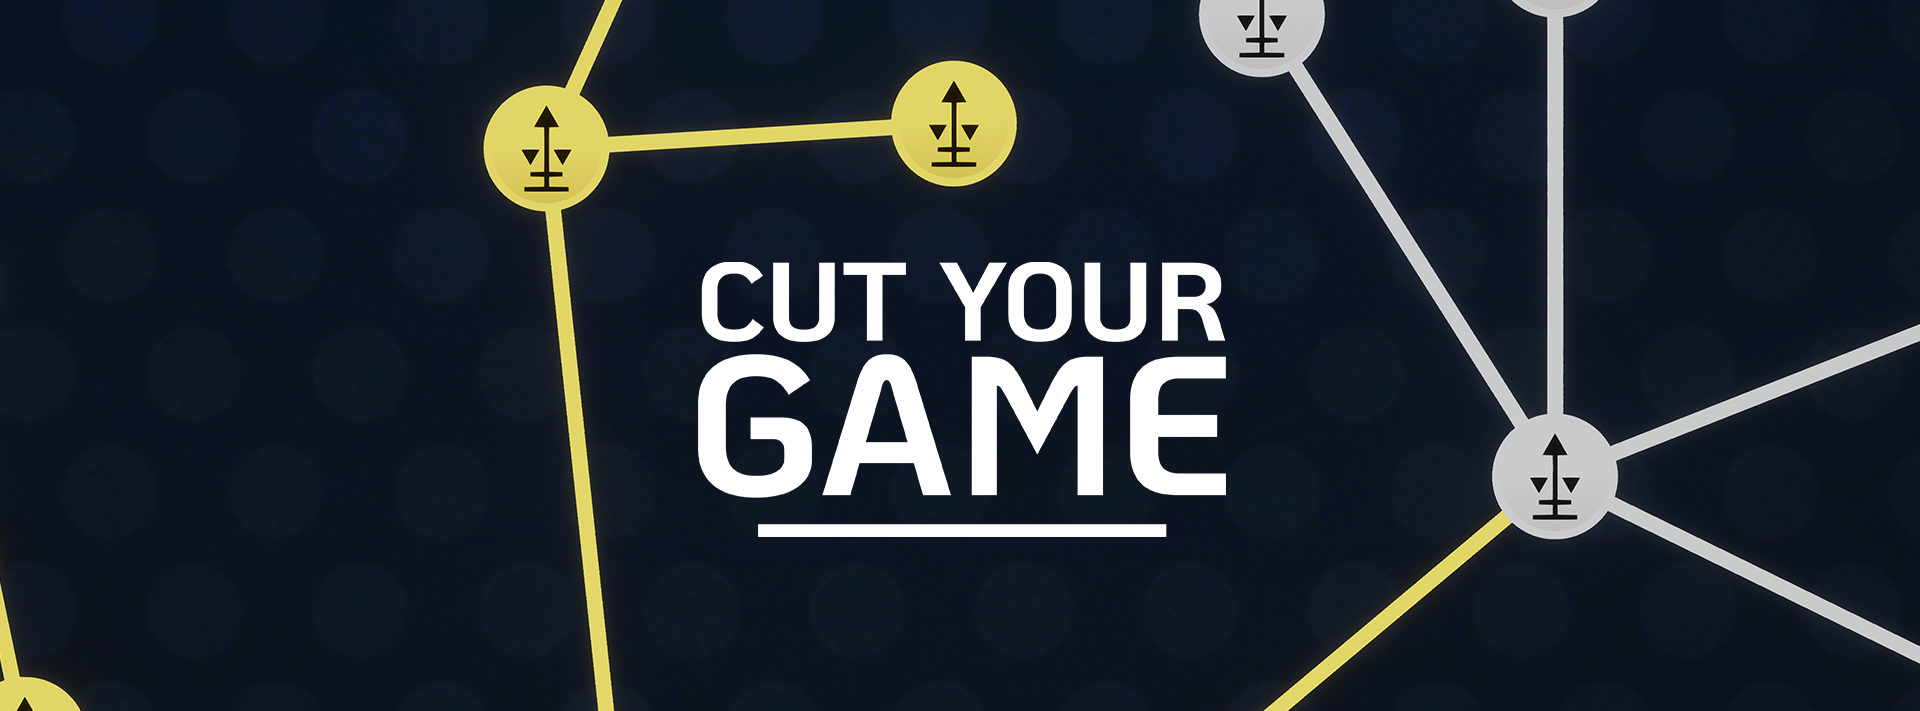 Cut Your Game